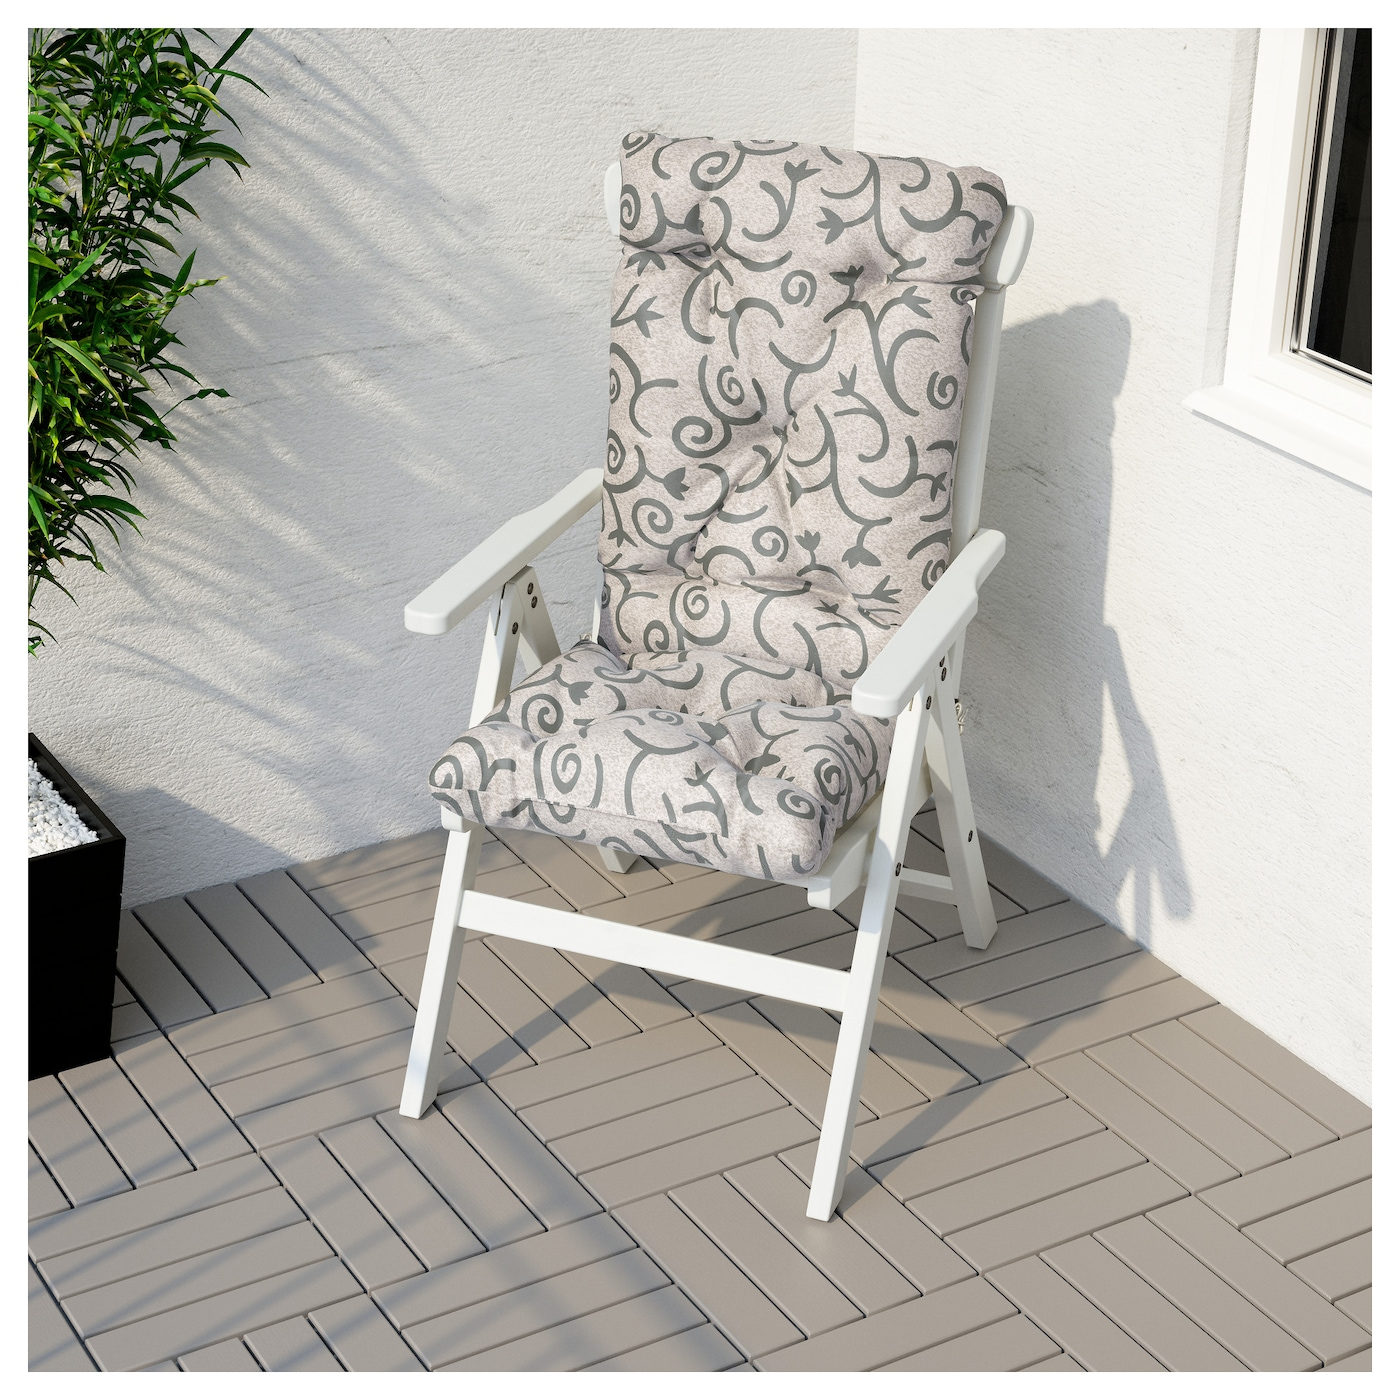 IKEA STEGÖN seat/back cushion, outdoor Ties keep the cushion firmly in place on the chair.